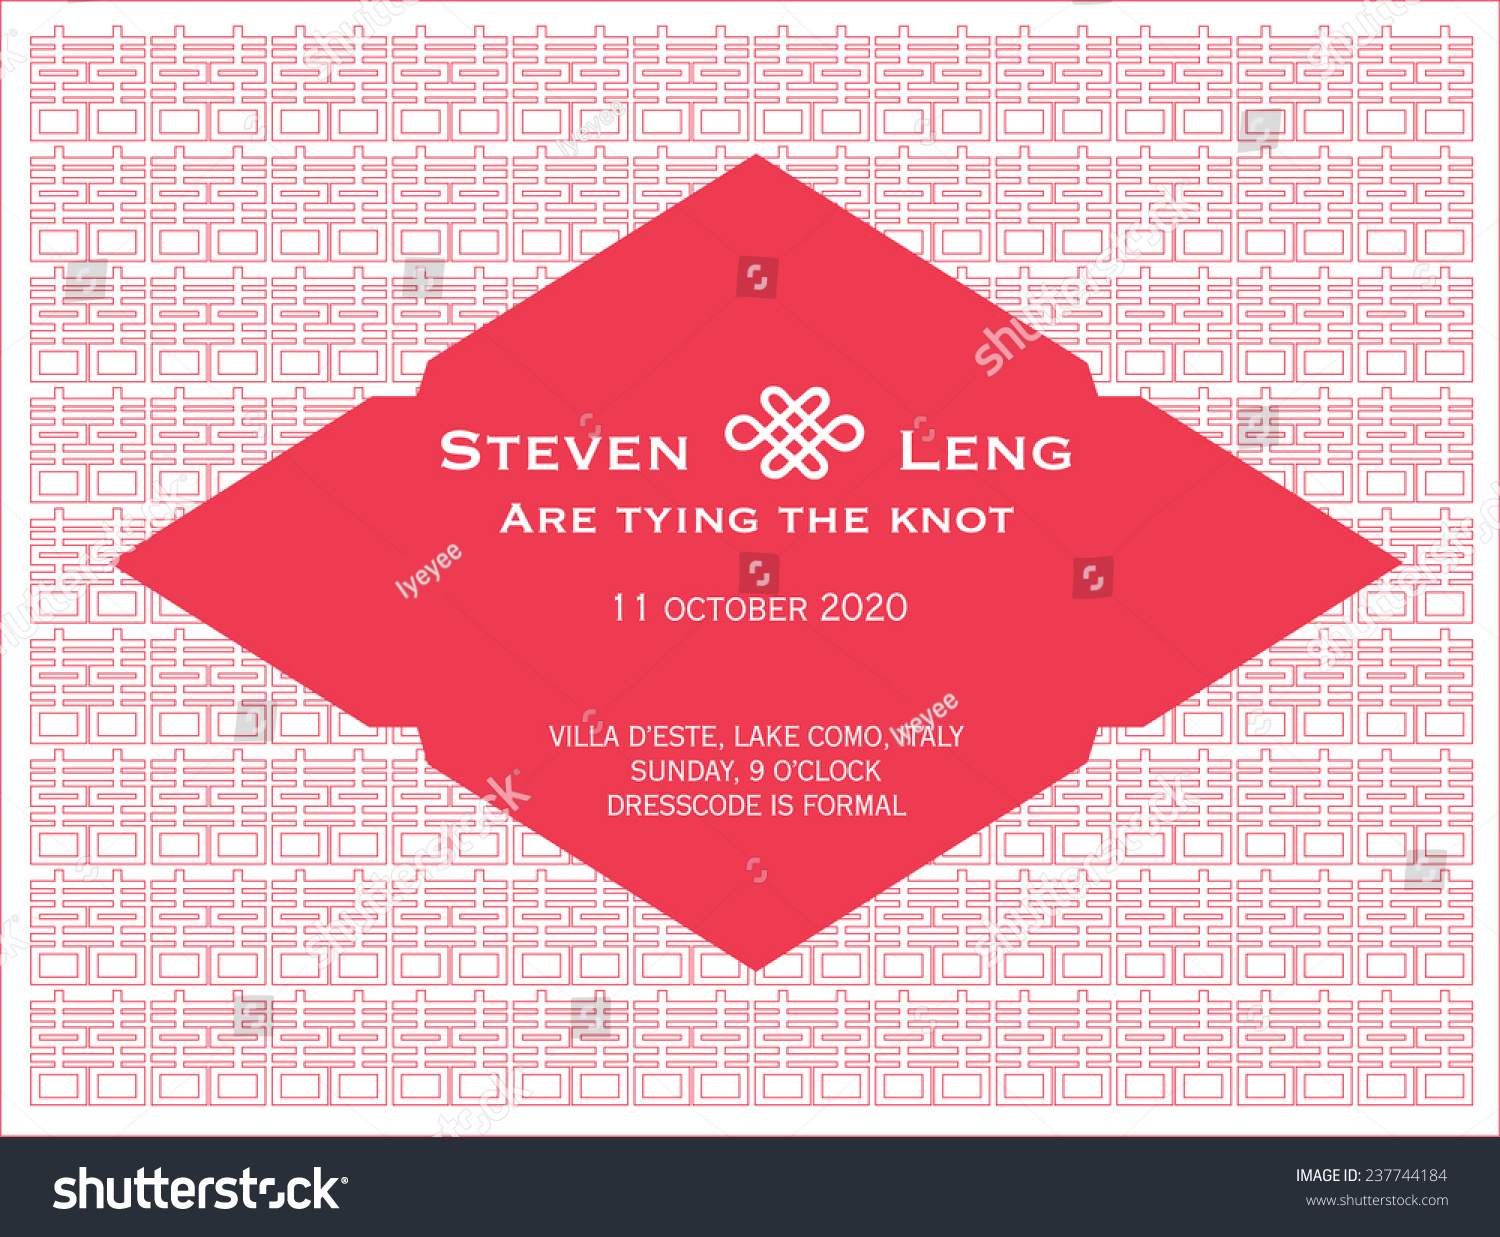 Chinese Wedding Invitation Card Template Chinese Stock Vector ...